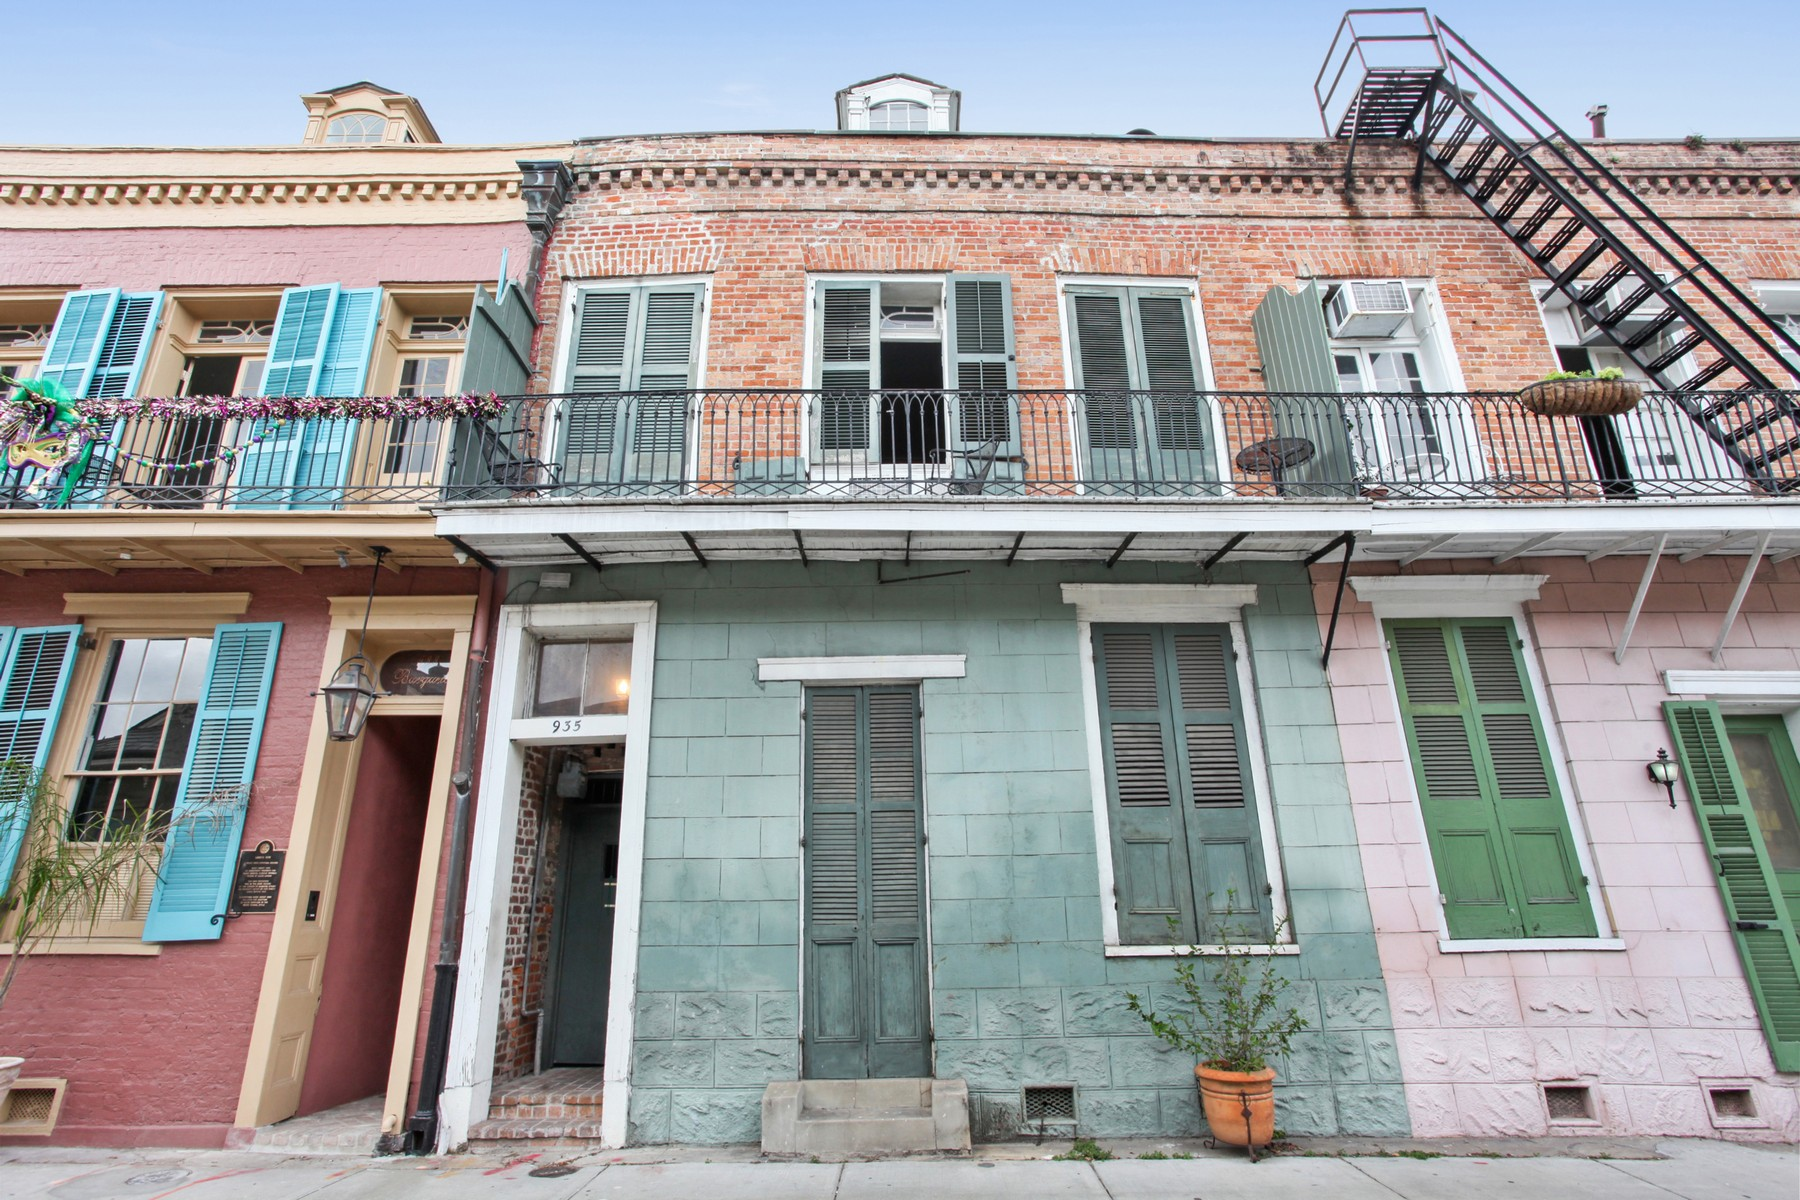 Condominium for Sale at 935 Burgundy Street, #5 935 Burgundy St #5 New Orleans, Louisiana 70116 United States